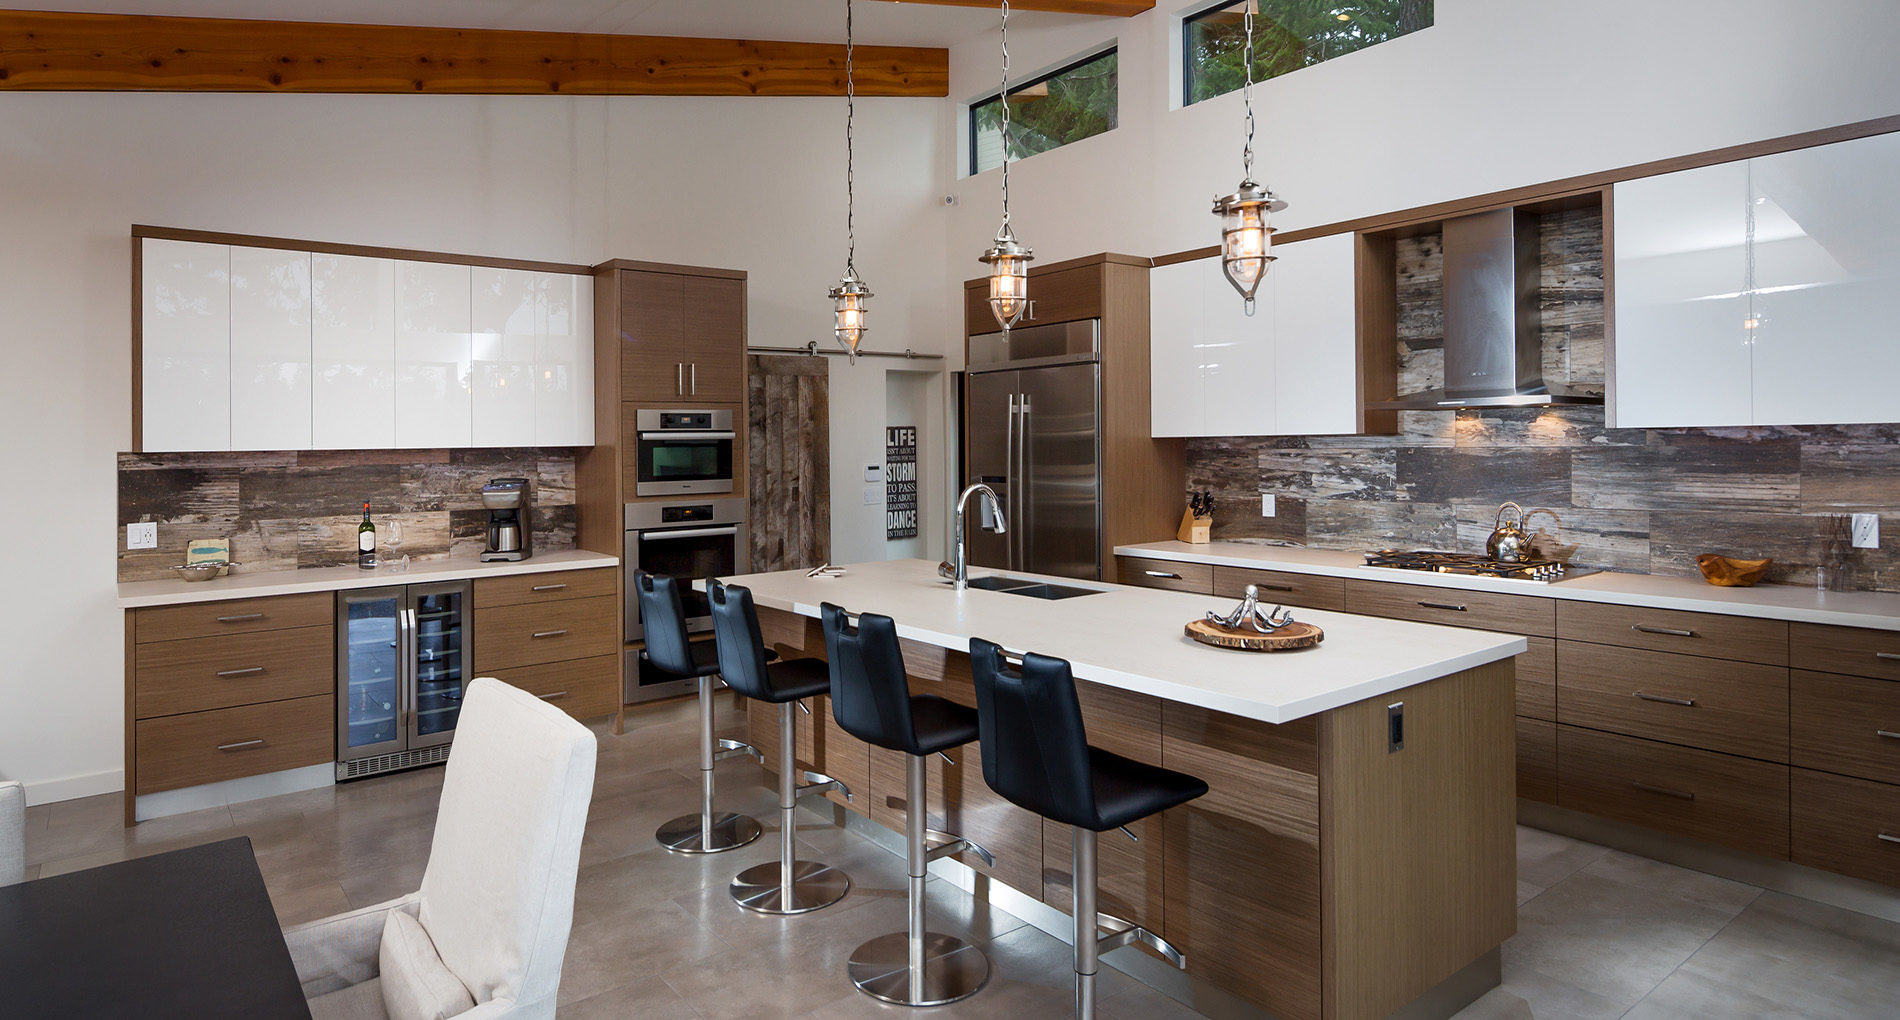 Kitchen Renovations Amp Design In Prince George Alair